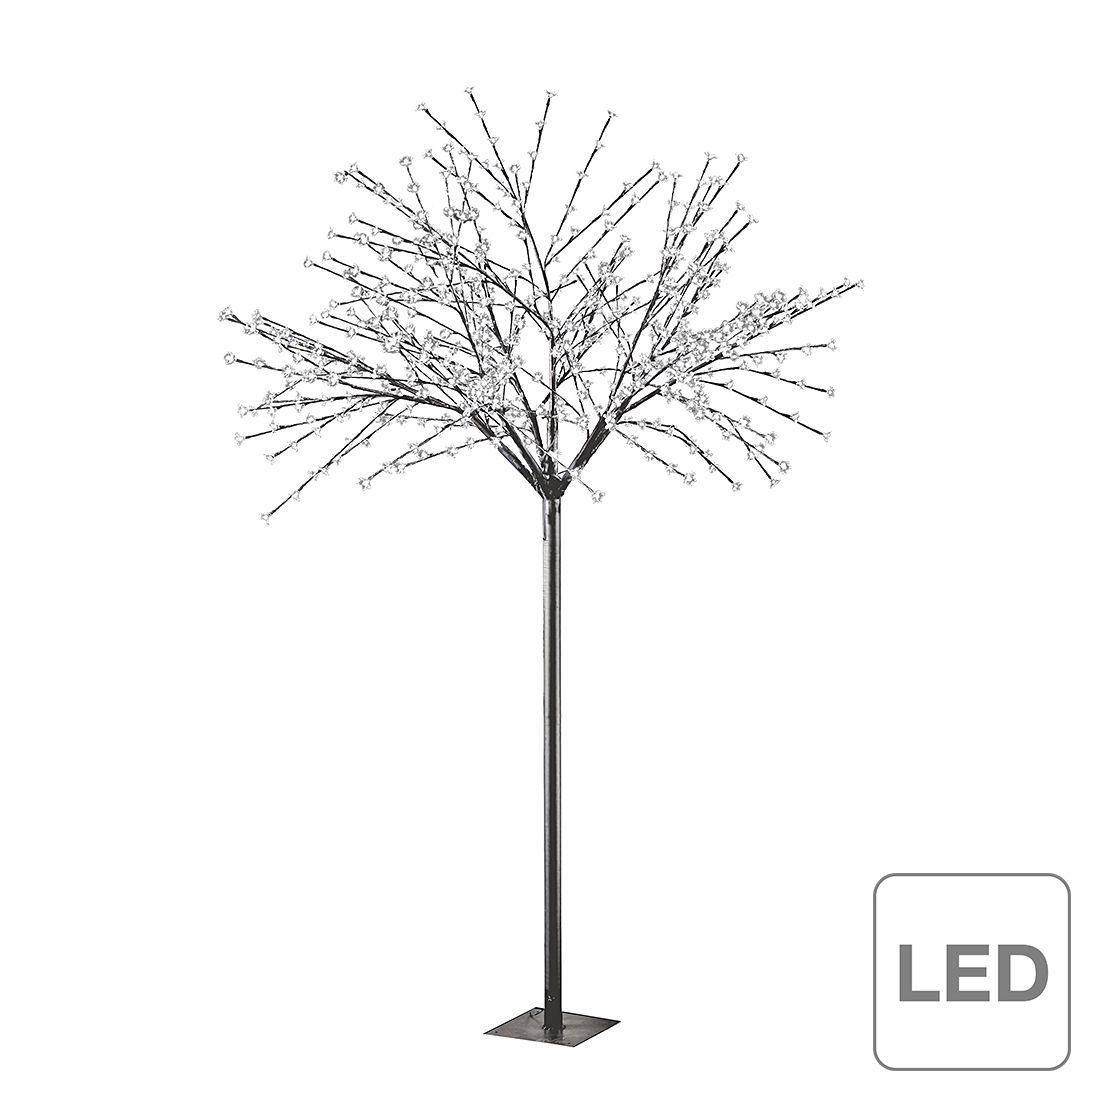 LED-Stehleuchte Led Tree ● Metall ● Schwarz- Lux A+